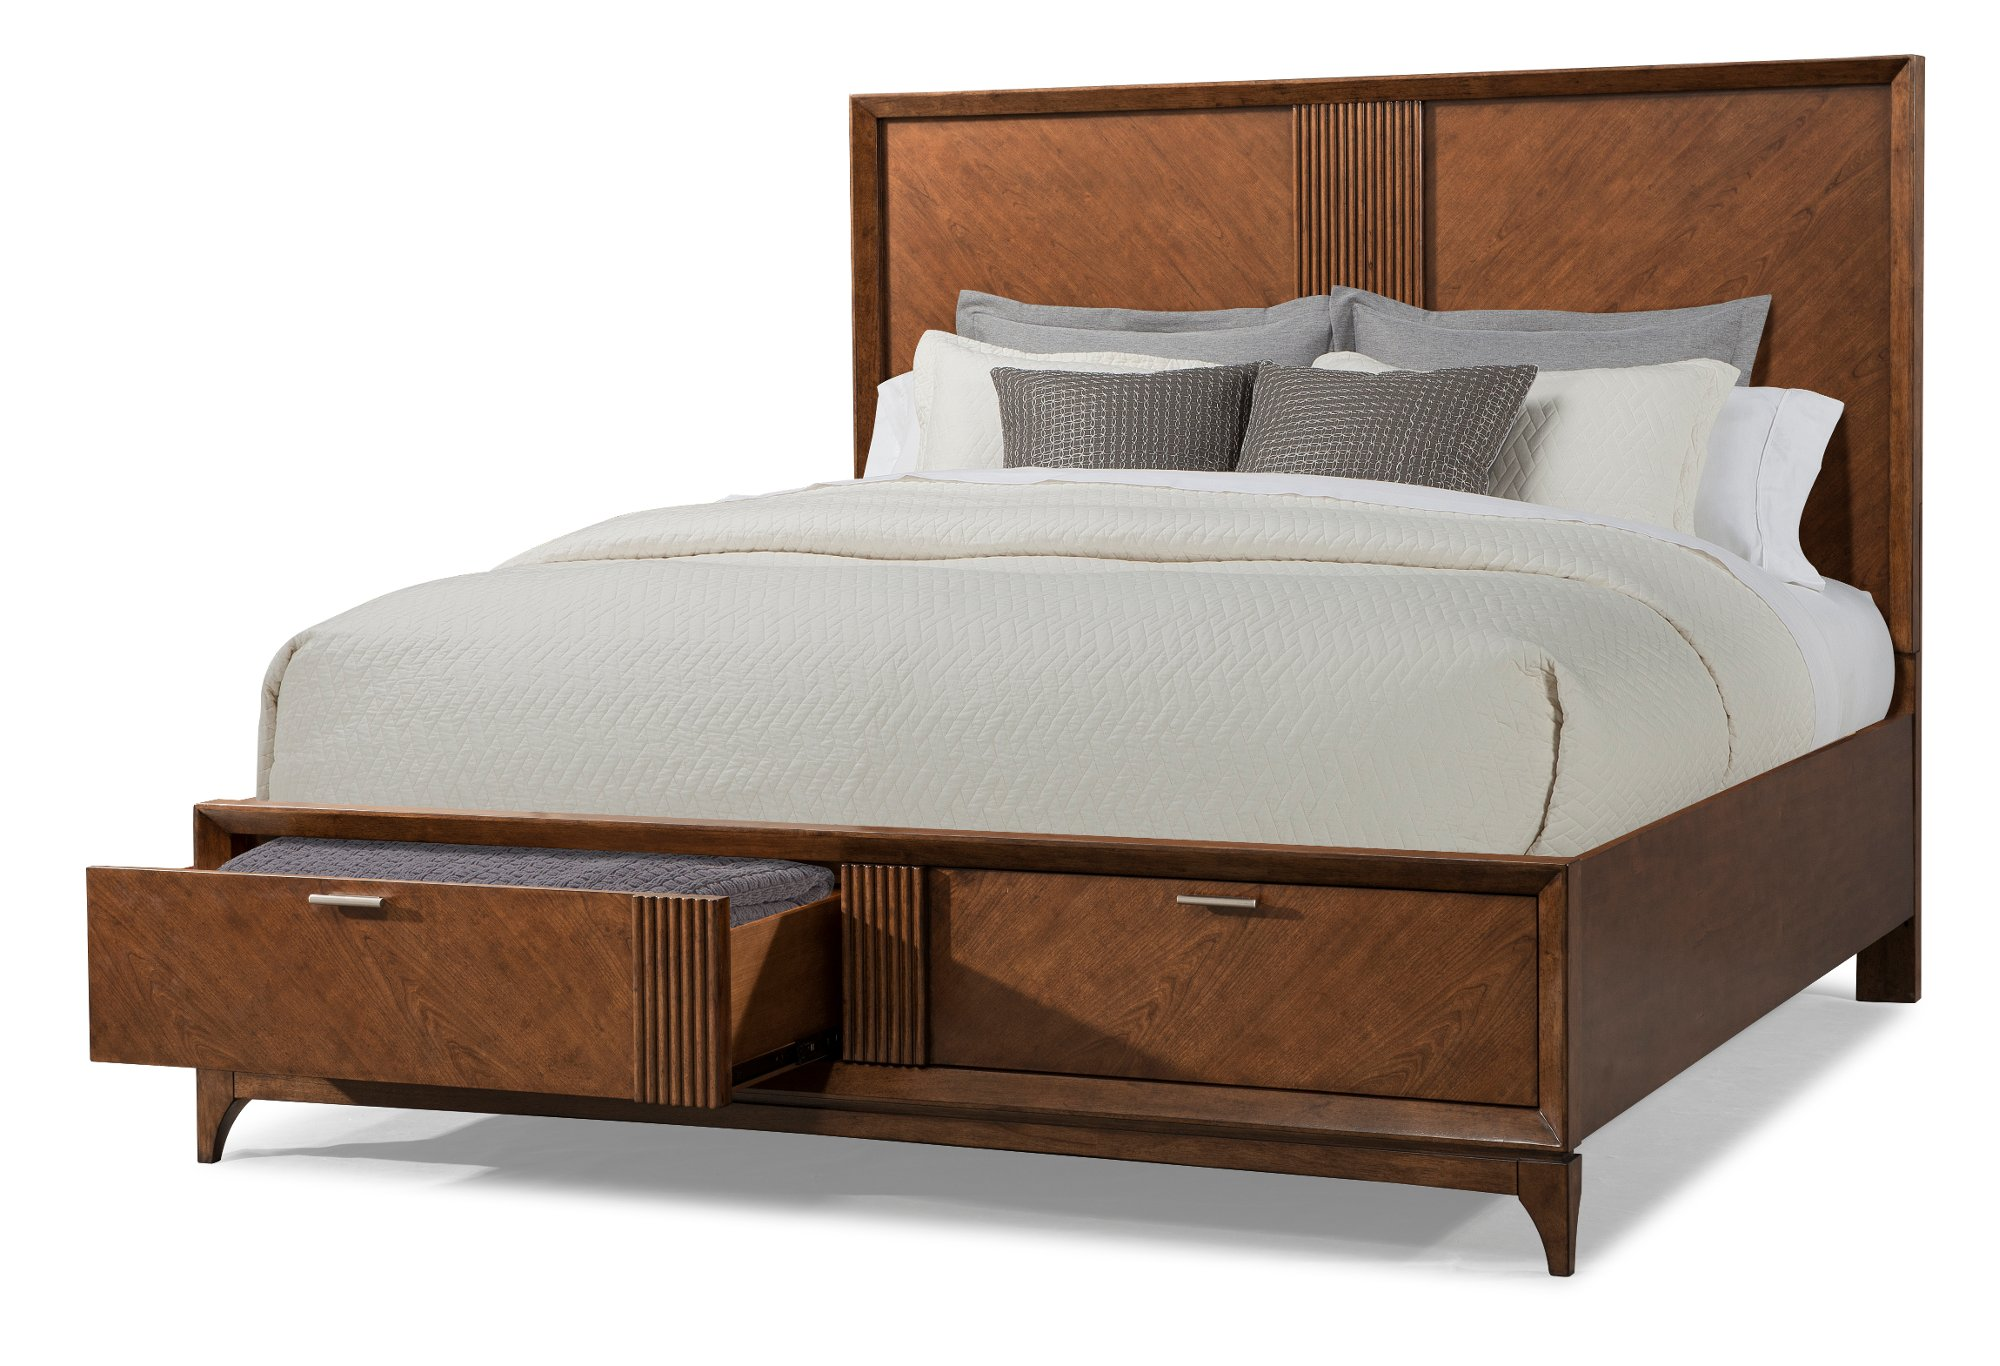 Brown Cherry Mid Century Modern 6 Piece California King Bedroom Set